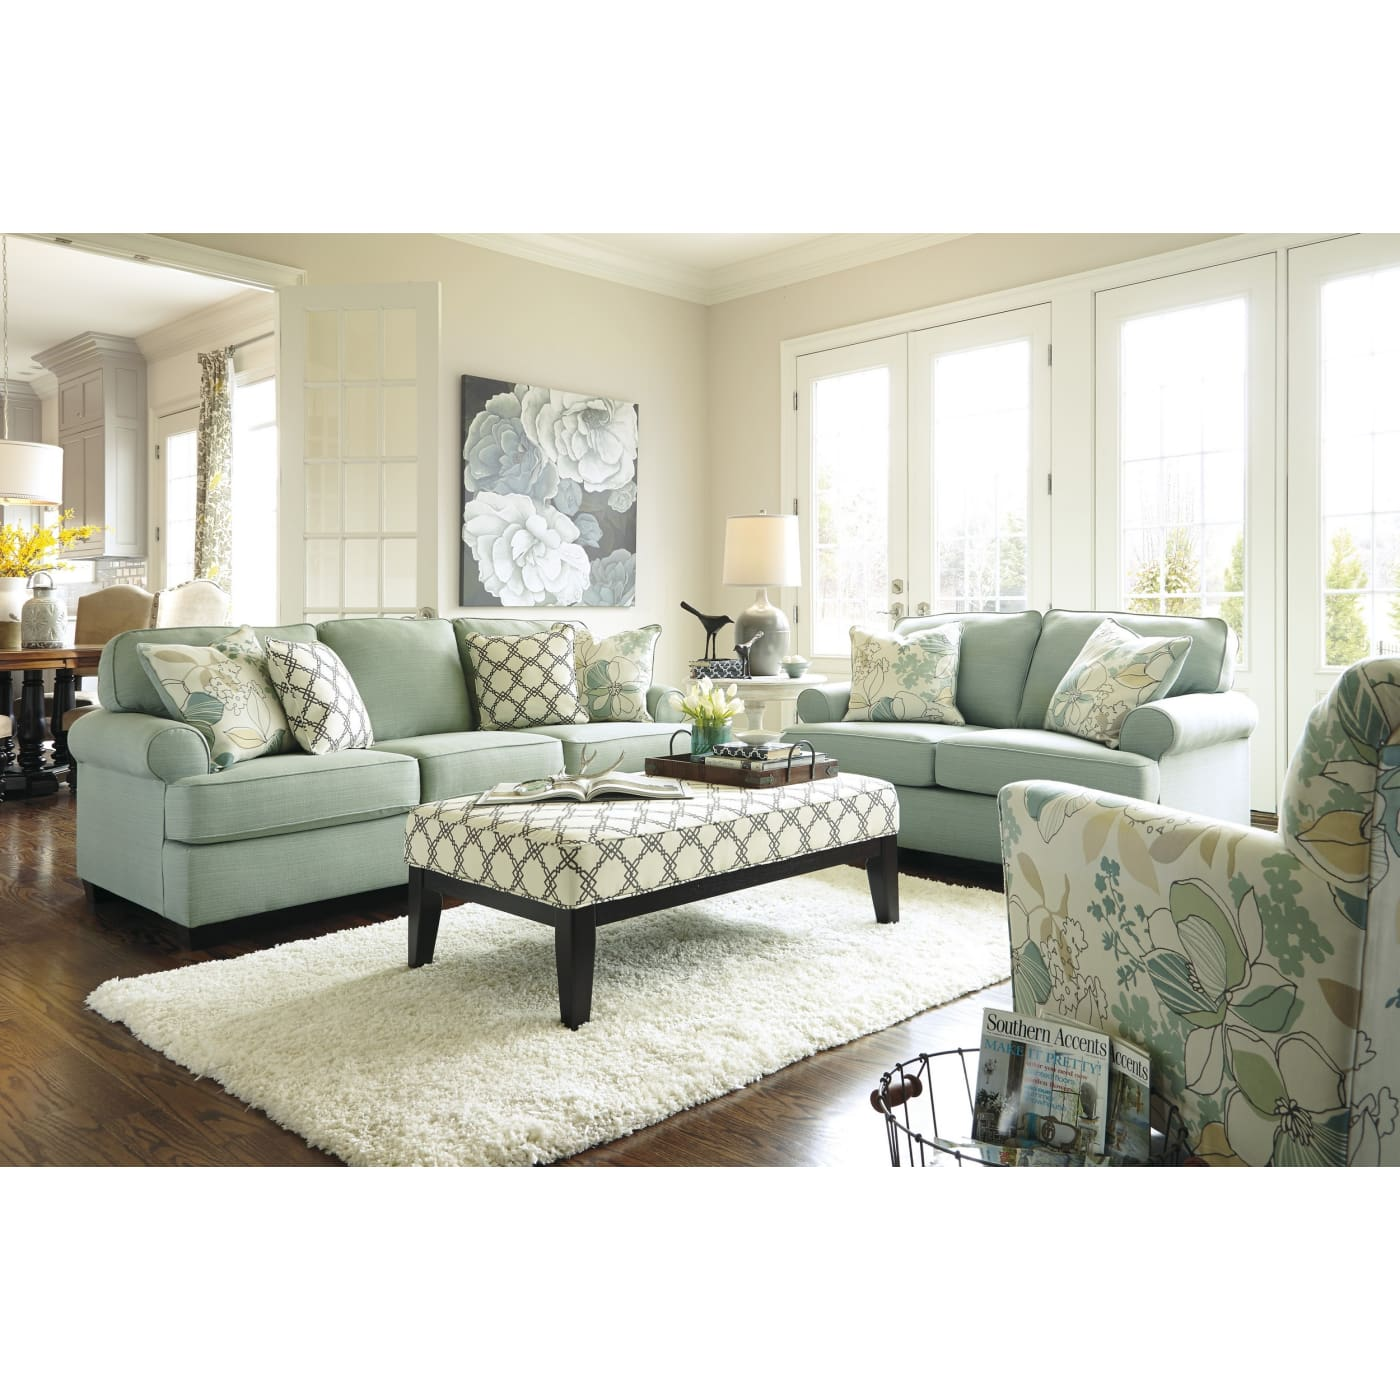 Signature Design By Ashley Daystar Seafoam 3 Piece Living